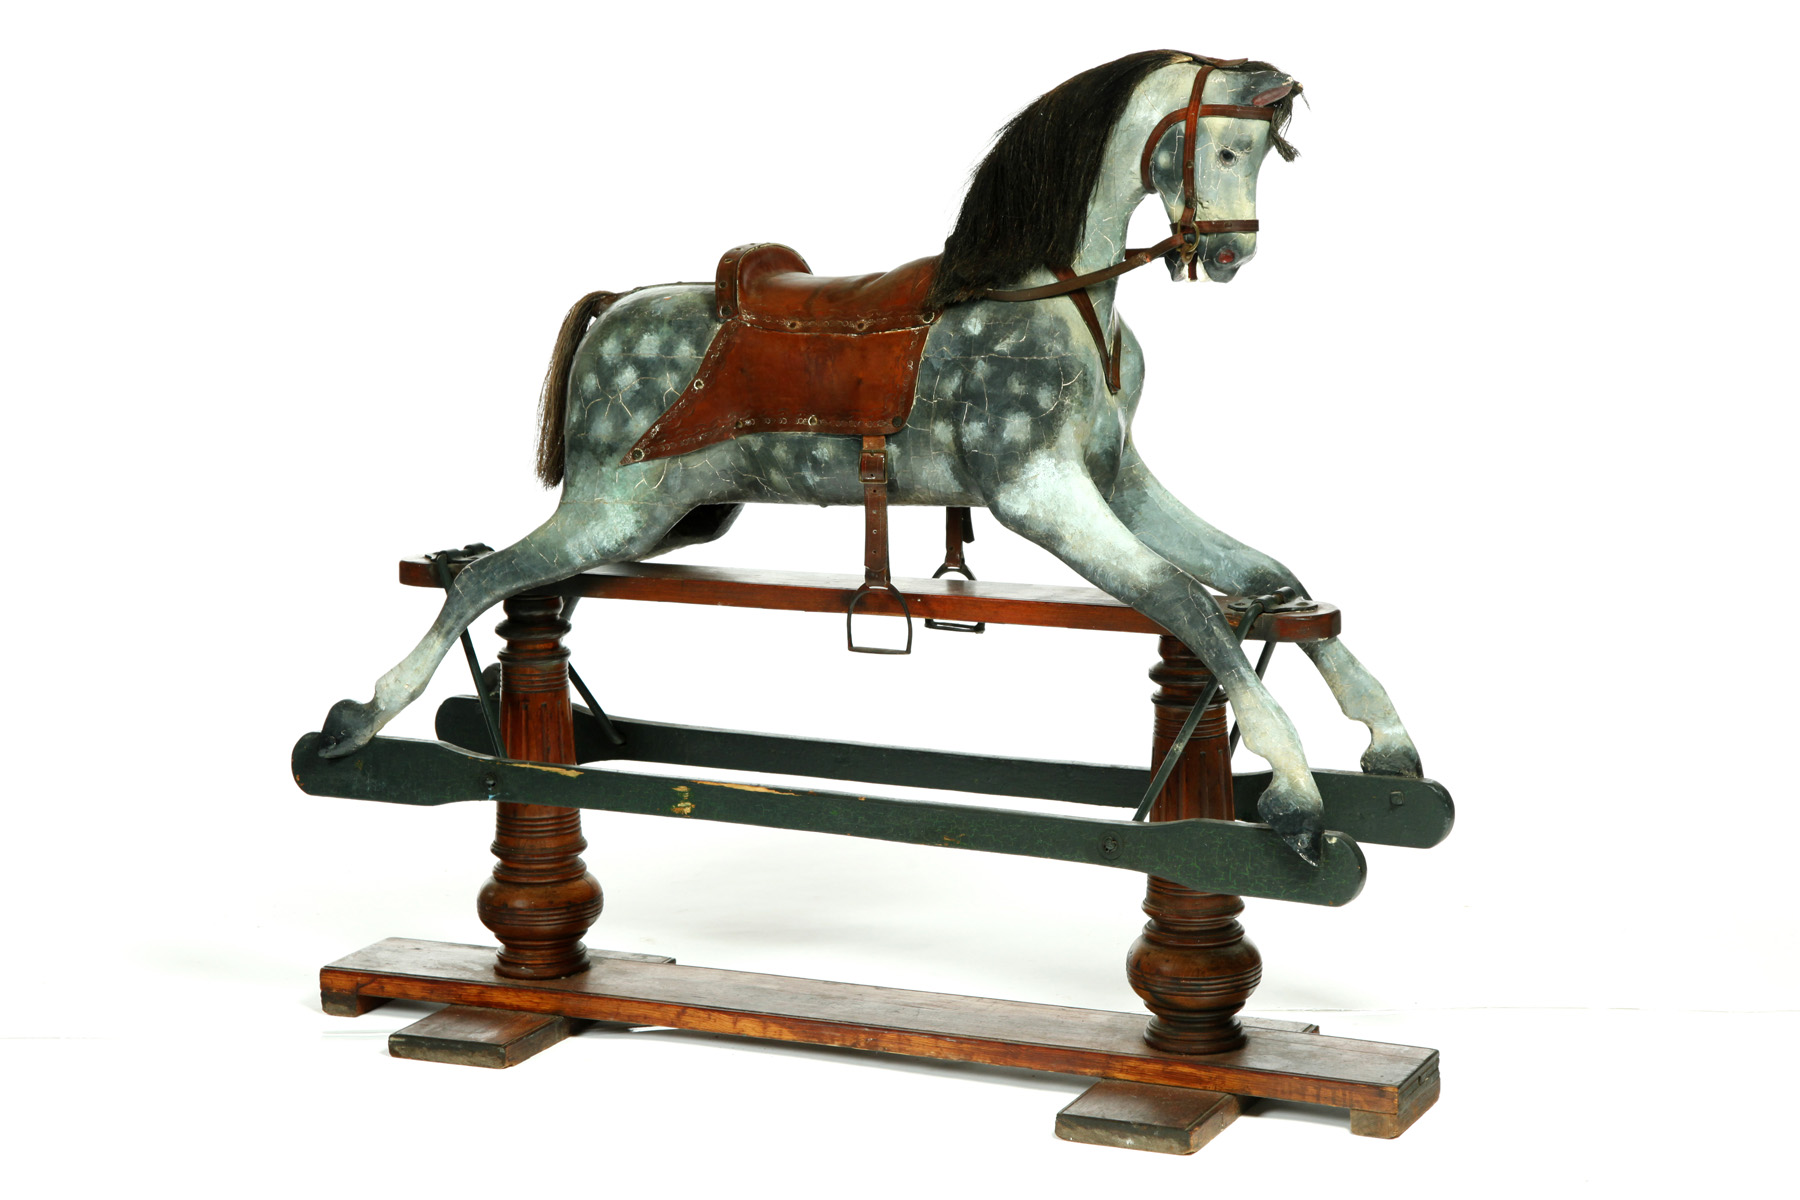 ROCKING HORSE.  Germany, late 19th-early